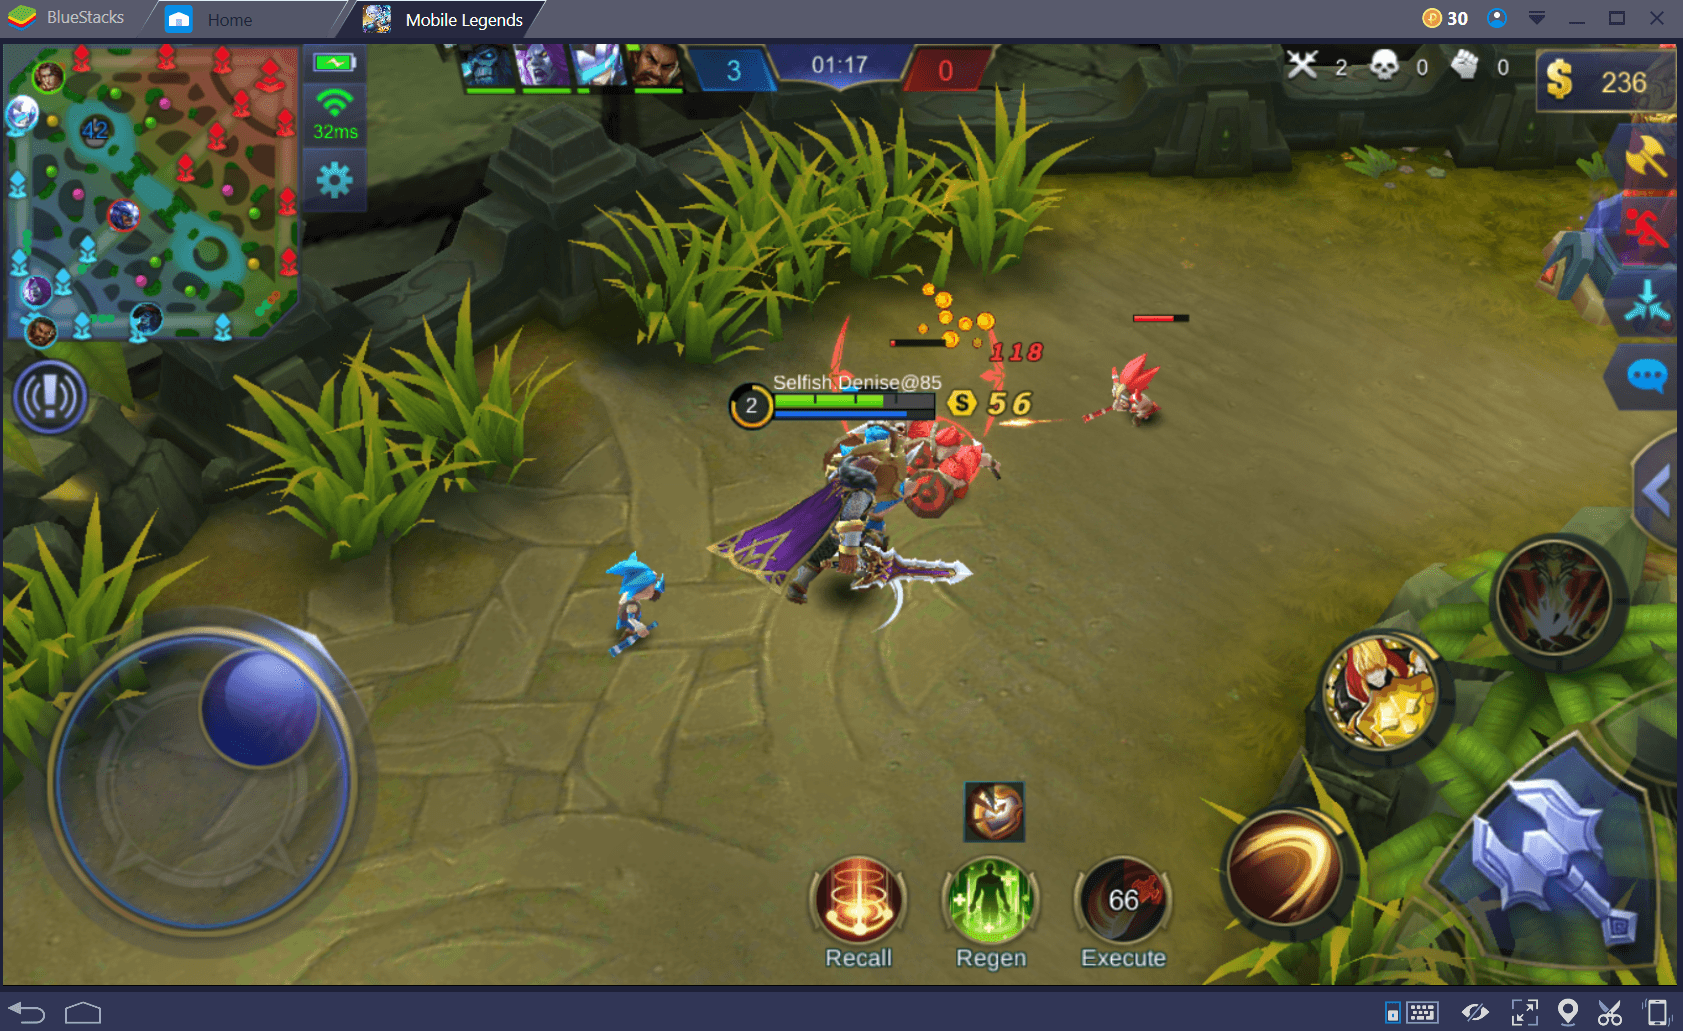 How to Master Top Lane in Mobile Legends: Bang Bang